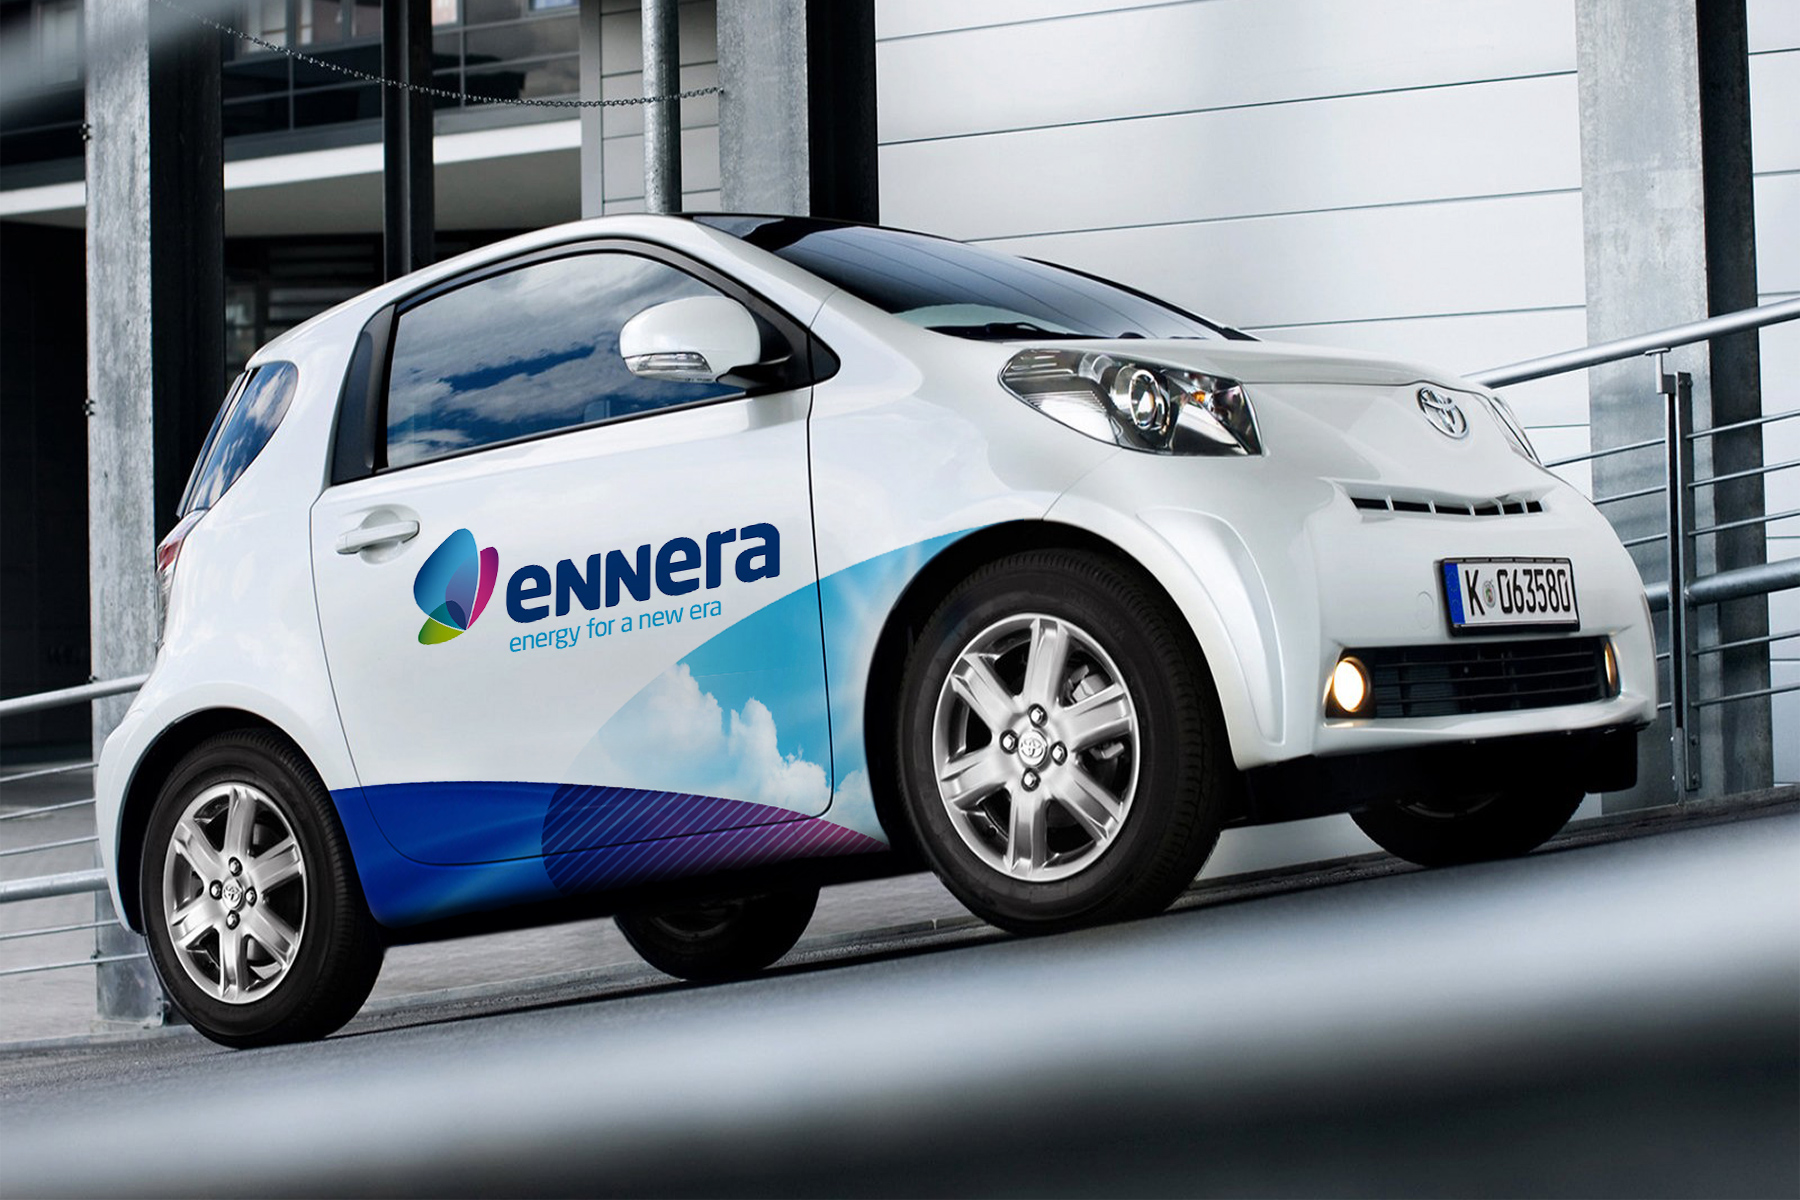 Ennera also engages in green initiatives and development. It is currently involved in projects around powering vehicles at charging stations.